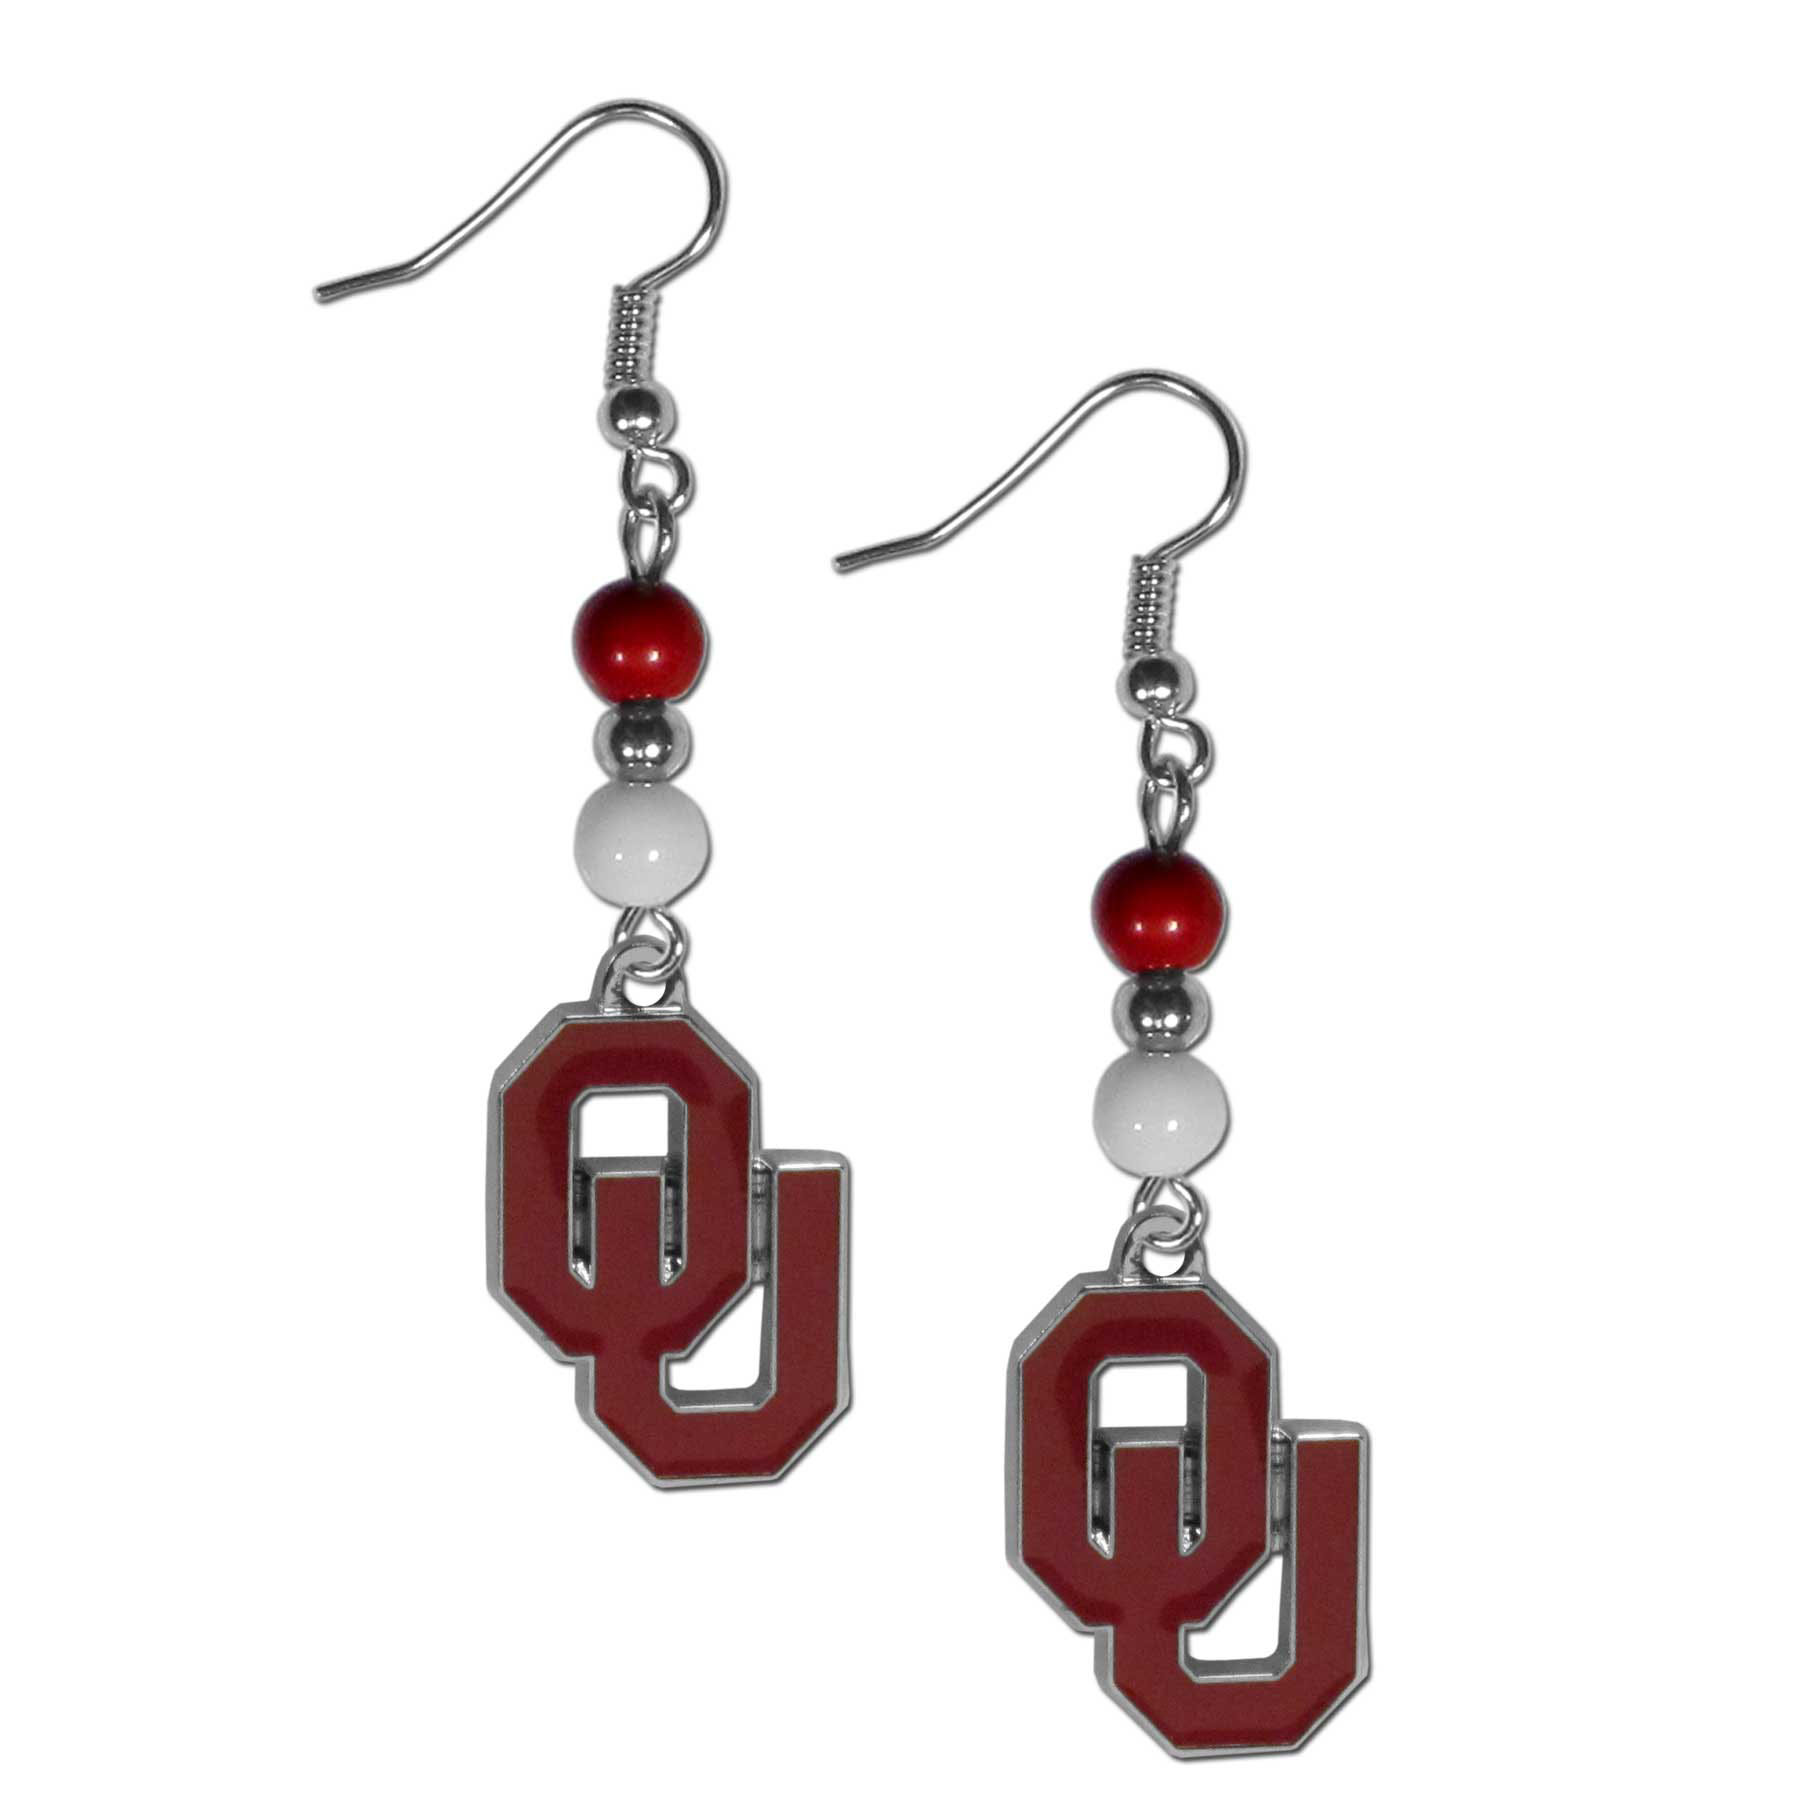 Oklahoma Sooners Fan Bead Dangle Earrings - Love your team, show it off with our Oklahoma Sooners bead dangle earrings! These super cute earrings hang approximately 2 inches and features 2 team colored beads and a high polish team charm. A must have for game day!